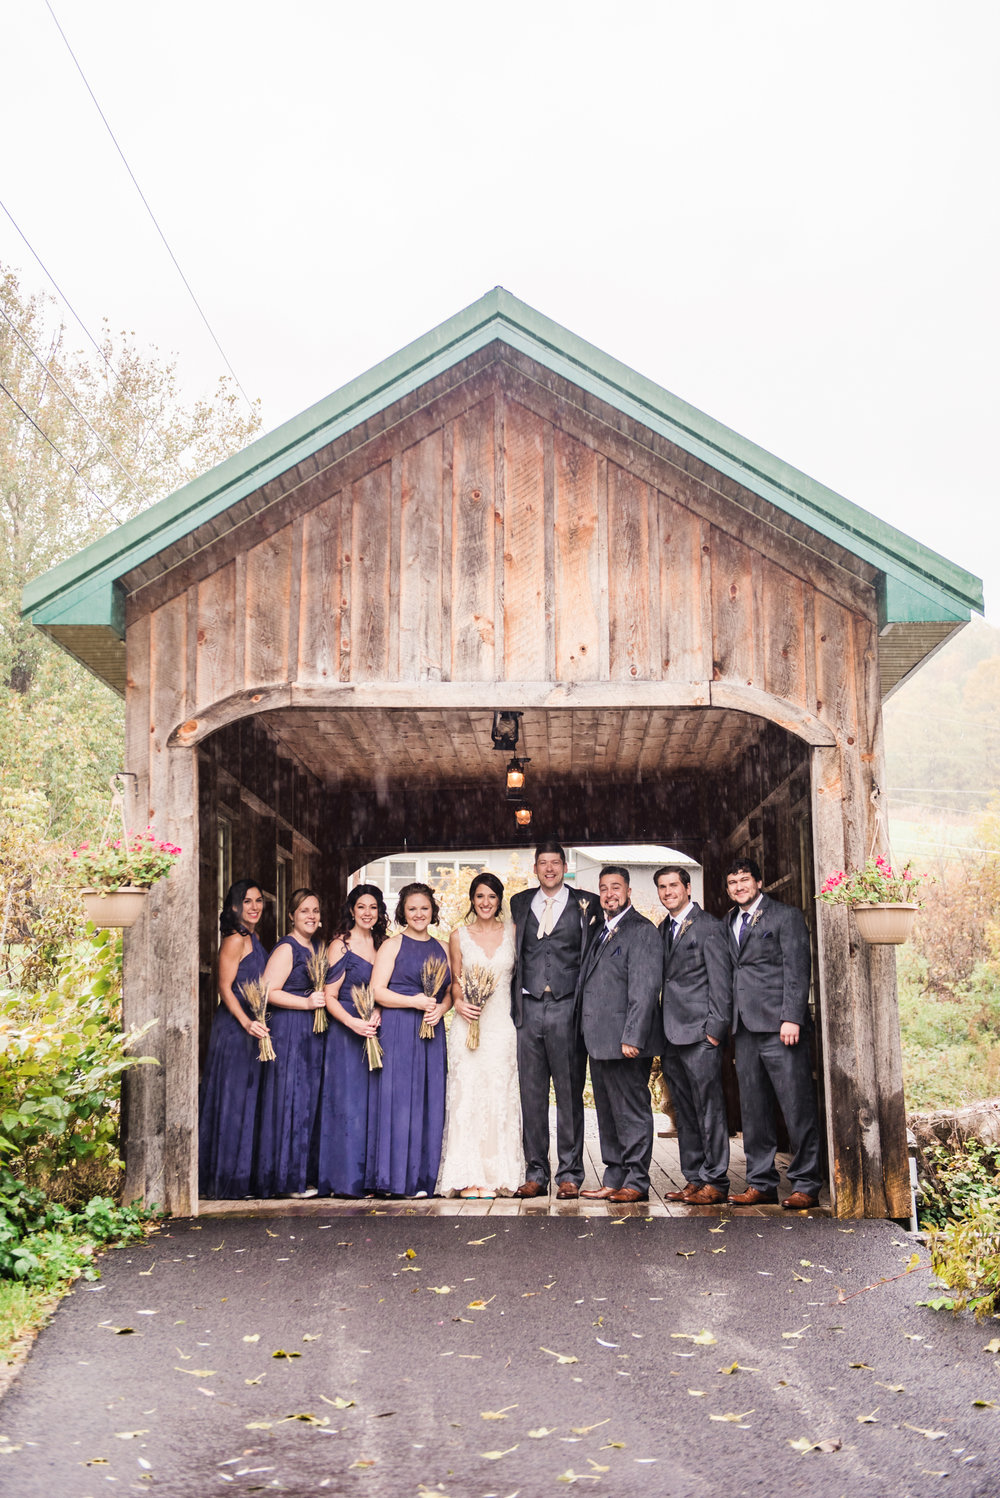 Wolf_Oak_Acres_Central_NY_Wedding_JILL_STUDIO_Rochester_NY_Photographer_DSC_7446.jpg